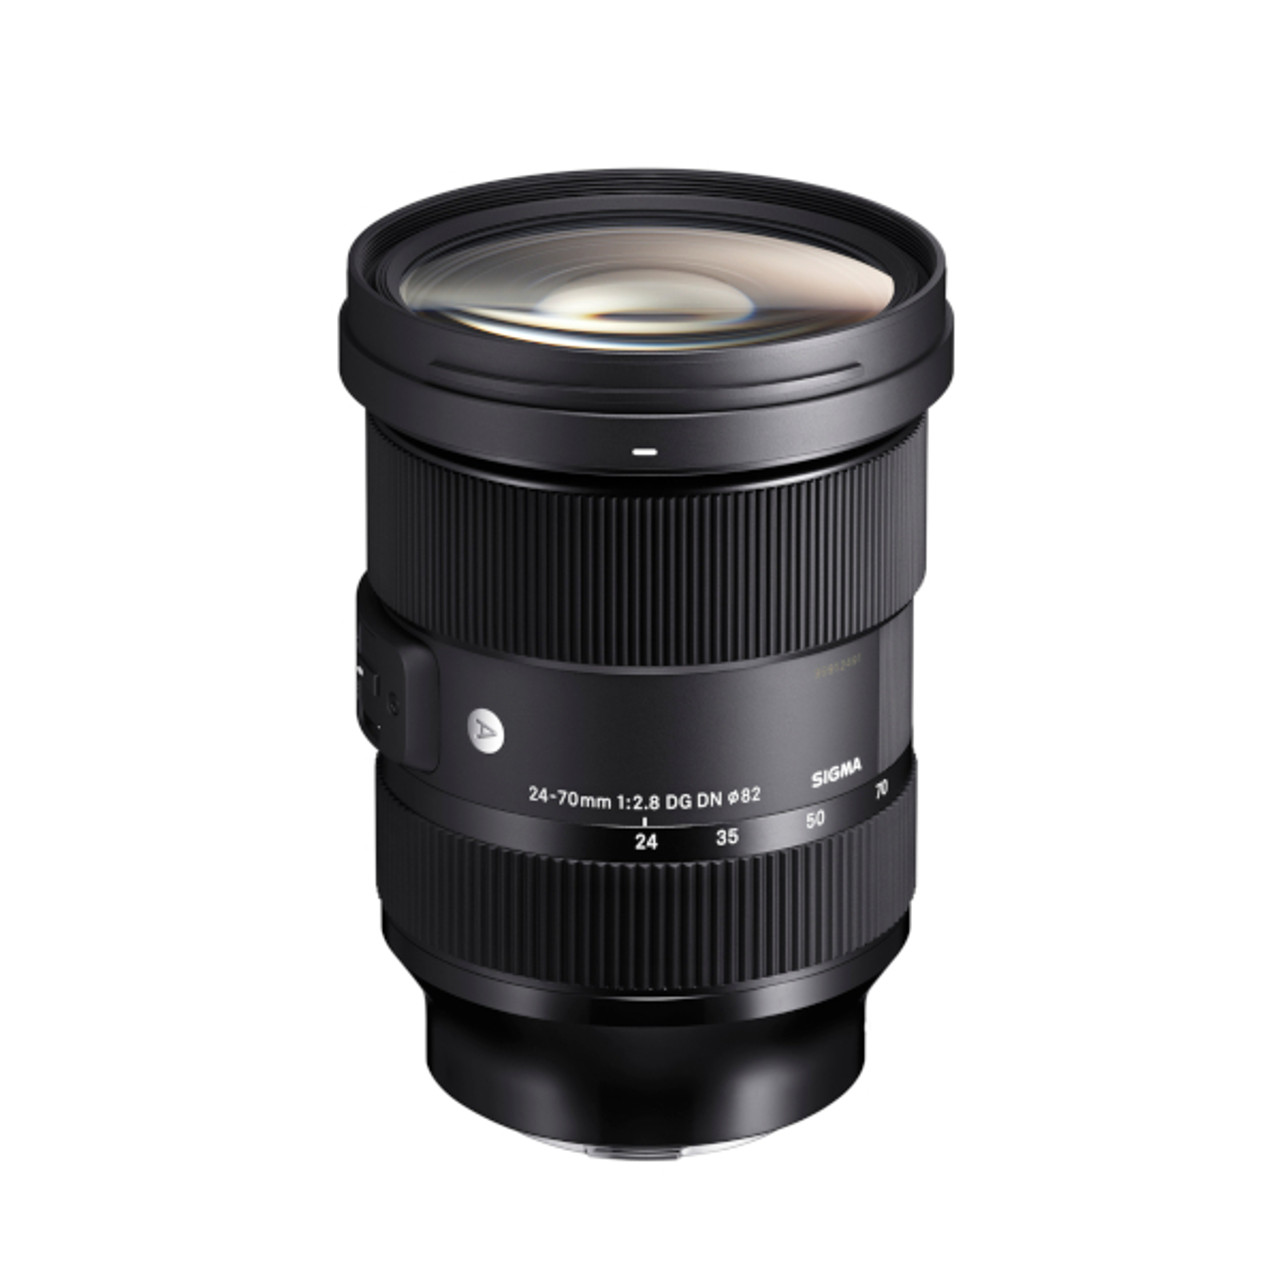 SIGMA 24-70mm F2.8 DG DN Art (Sony E-Mount)